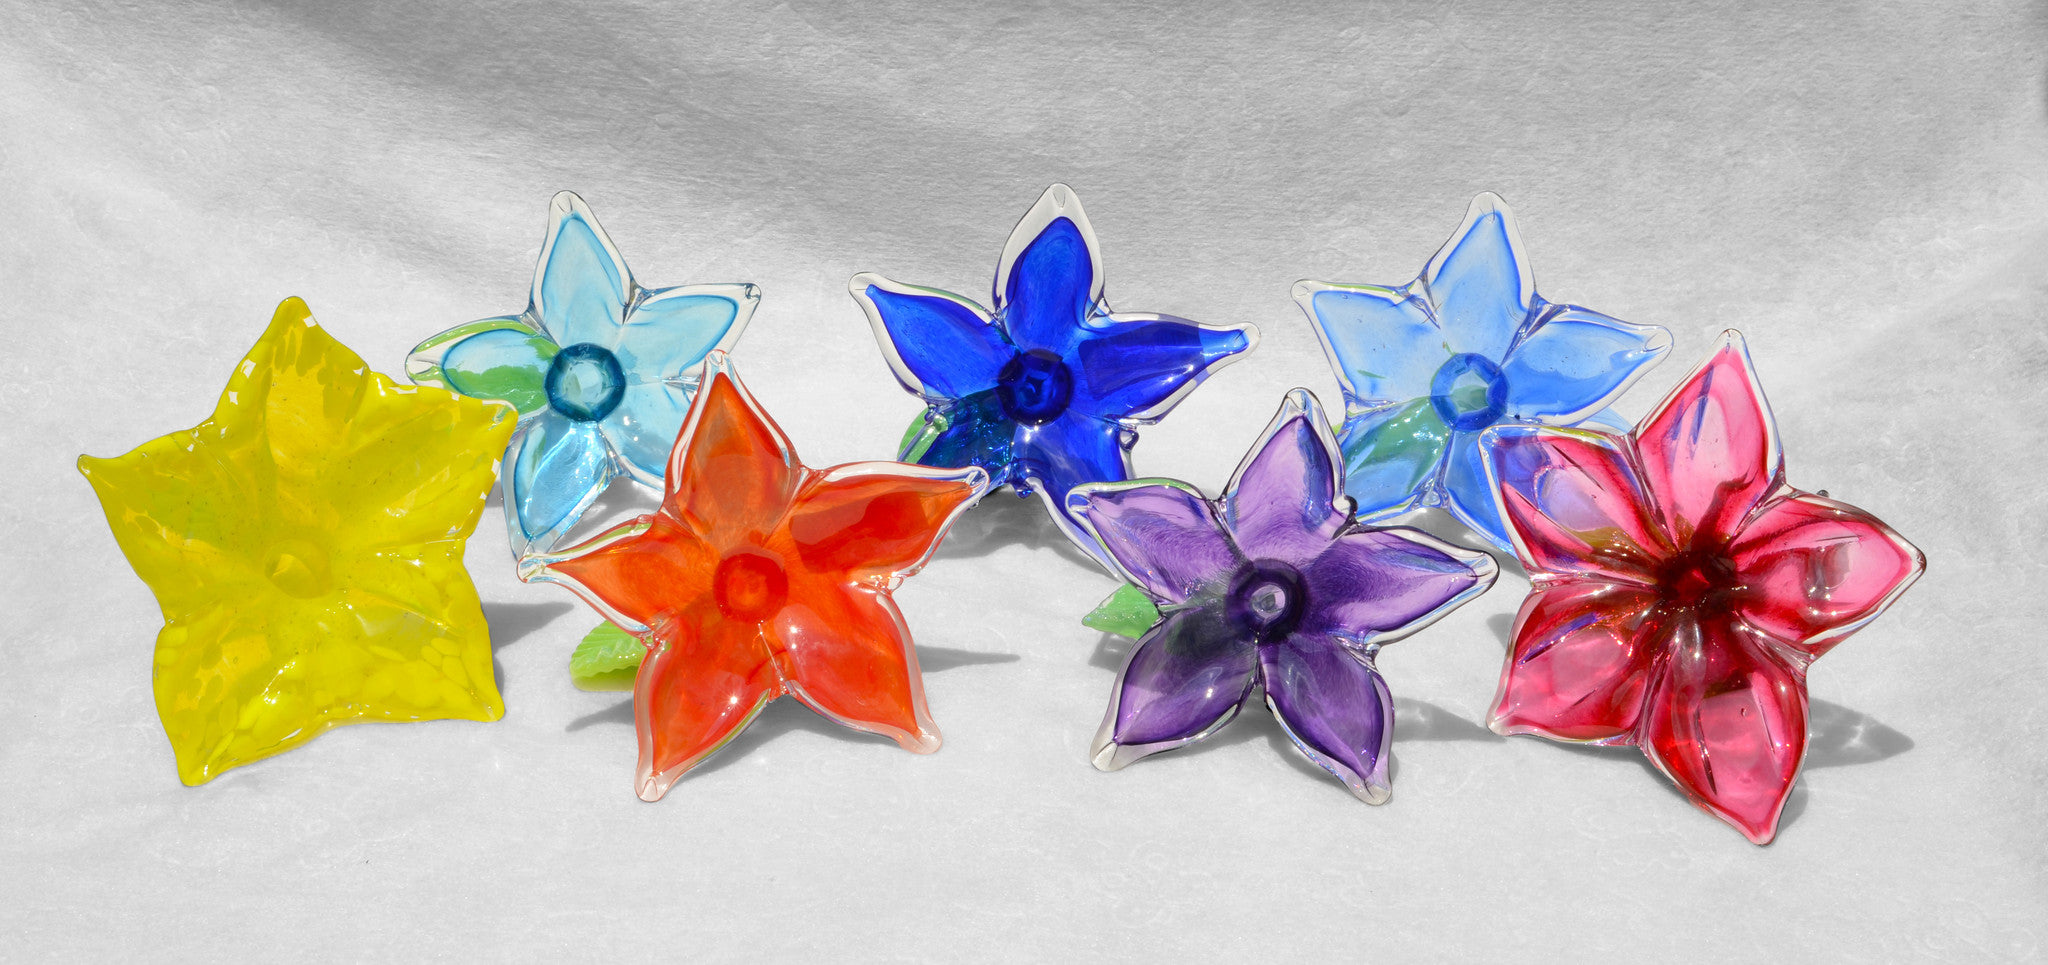 Small unique handmade glass accent flowers in assorted colors